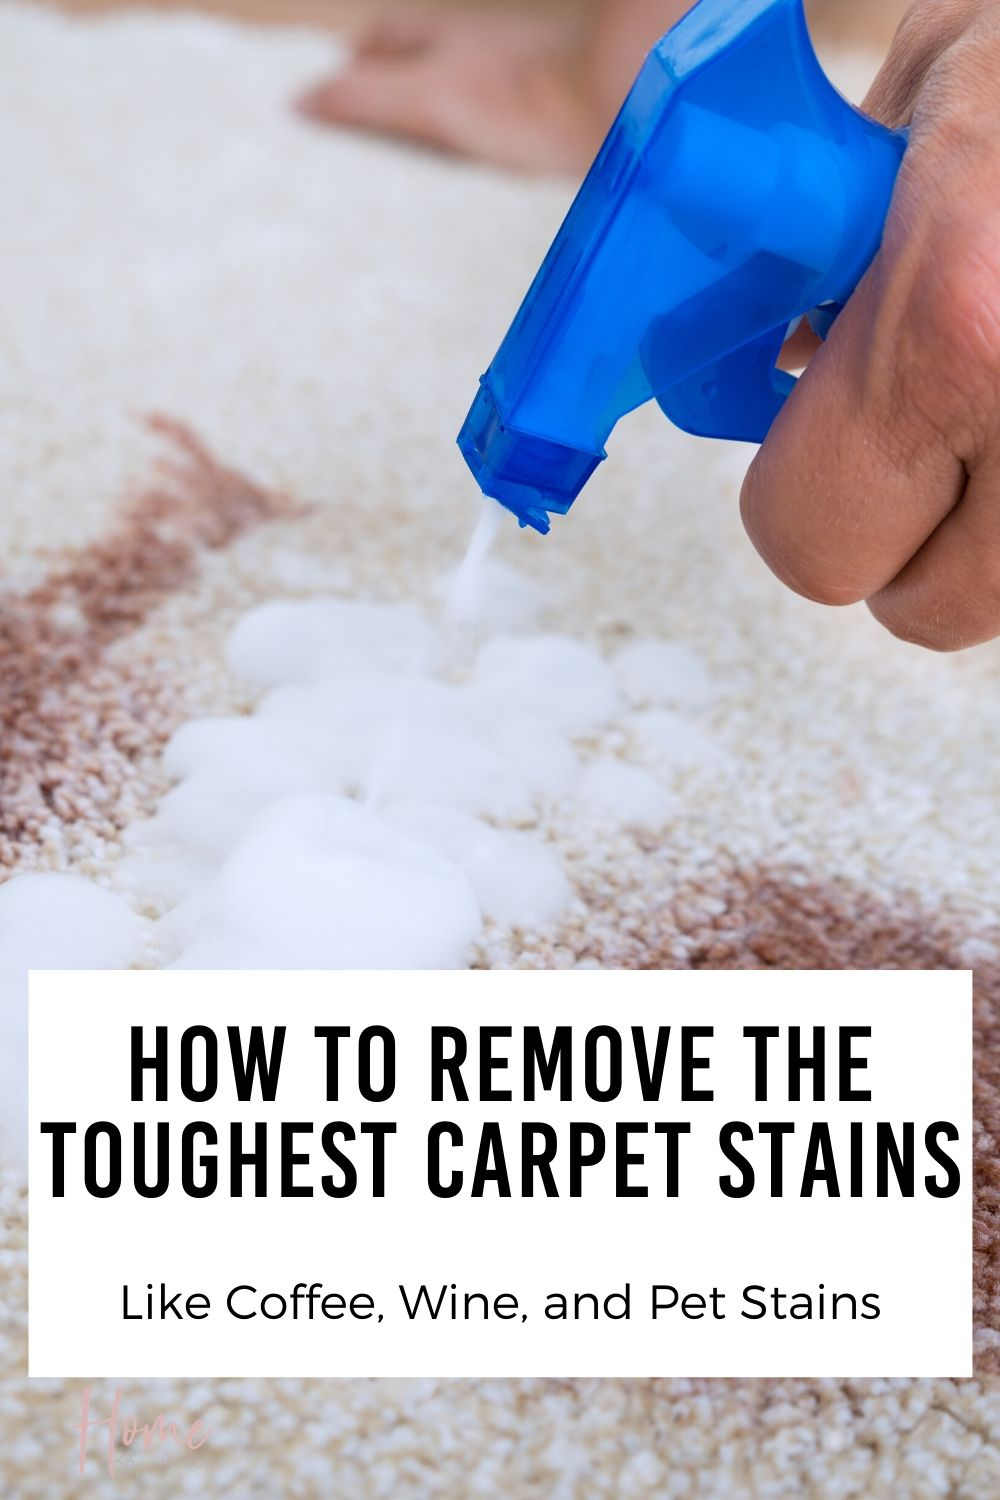 How to Remove Carpet Stains Like Coffee and Pet Stains via @homebyjenn